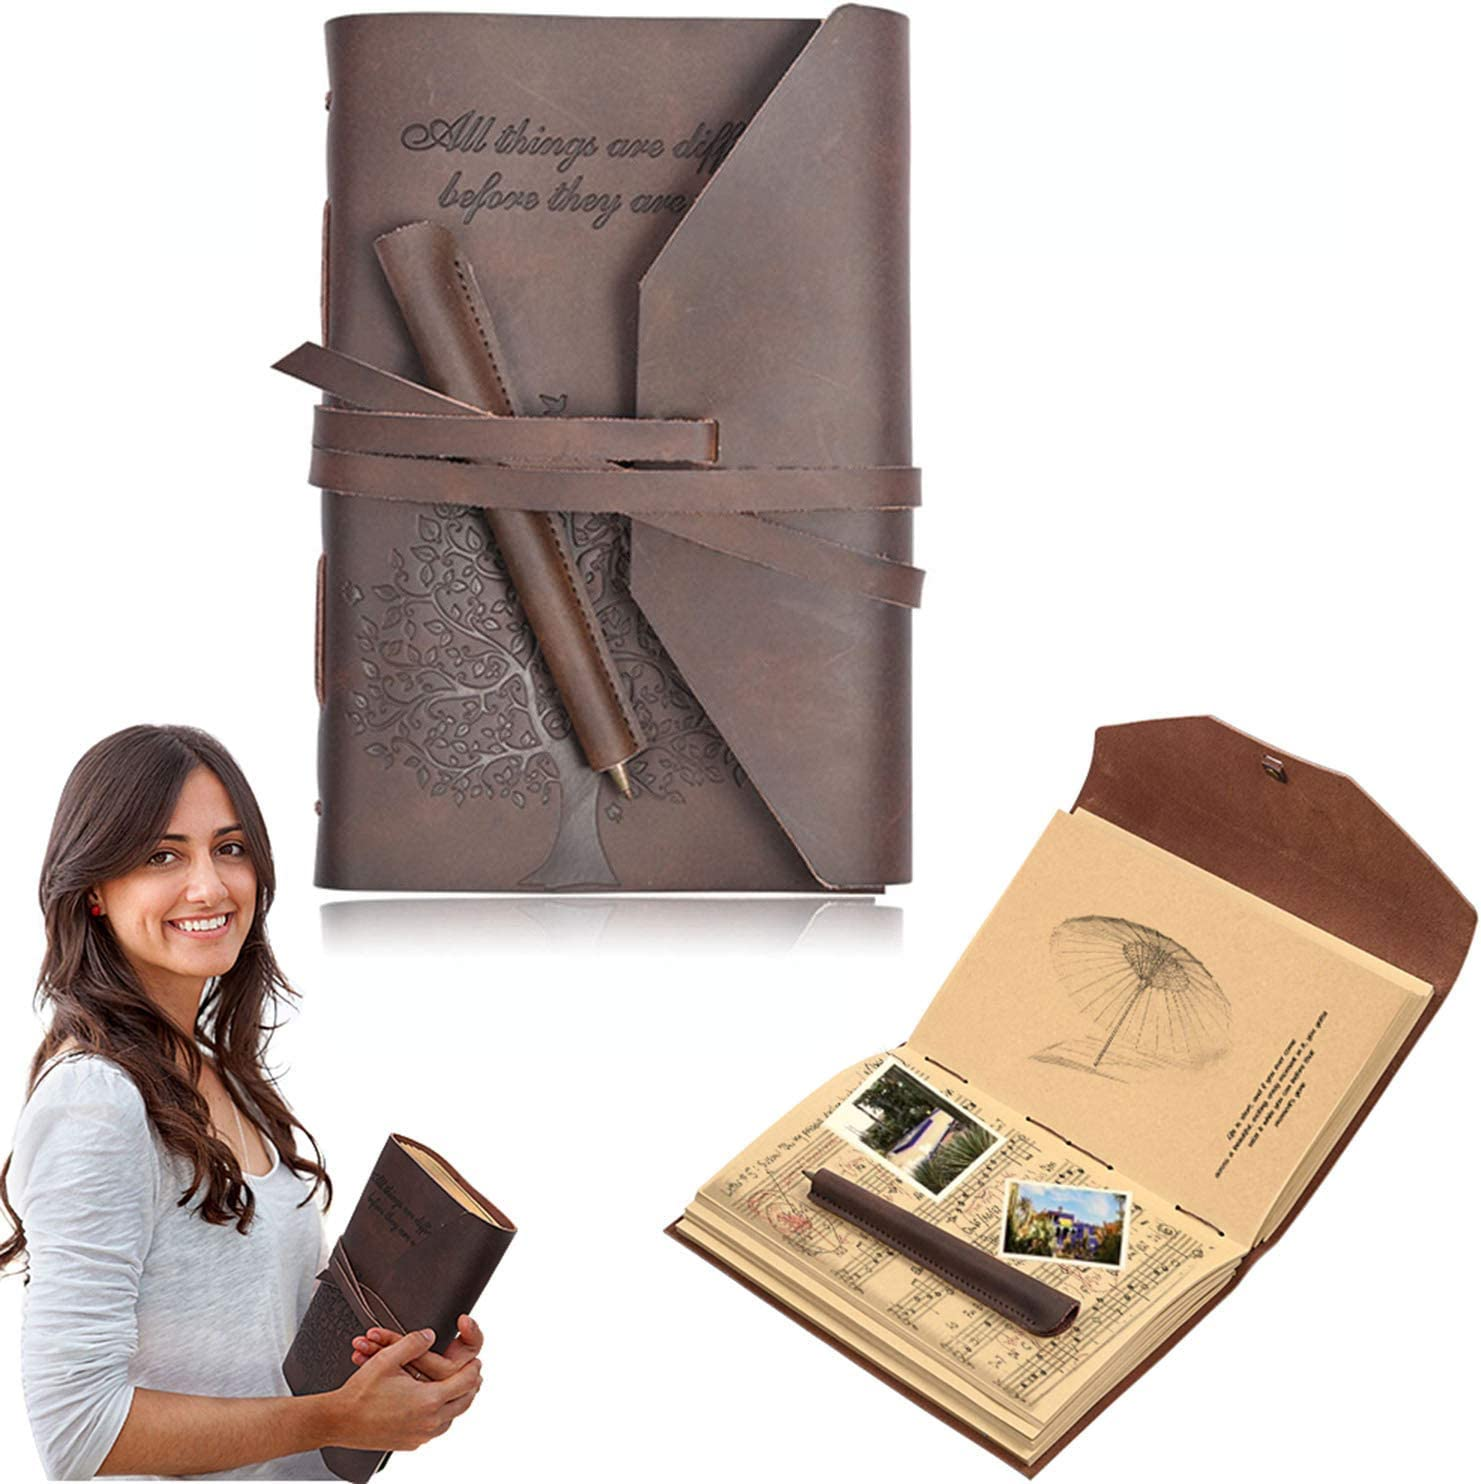 Handmade Leather Journal Retro Vintage Leather Travel Journal Notebook With Pen Craft Papers For Men Women Gift, Perfect For Writing In Travel Working or Office (Brown) (NOTEBOOK+PEN)